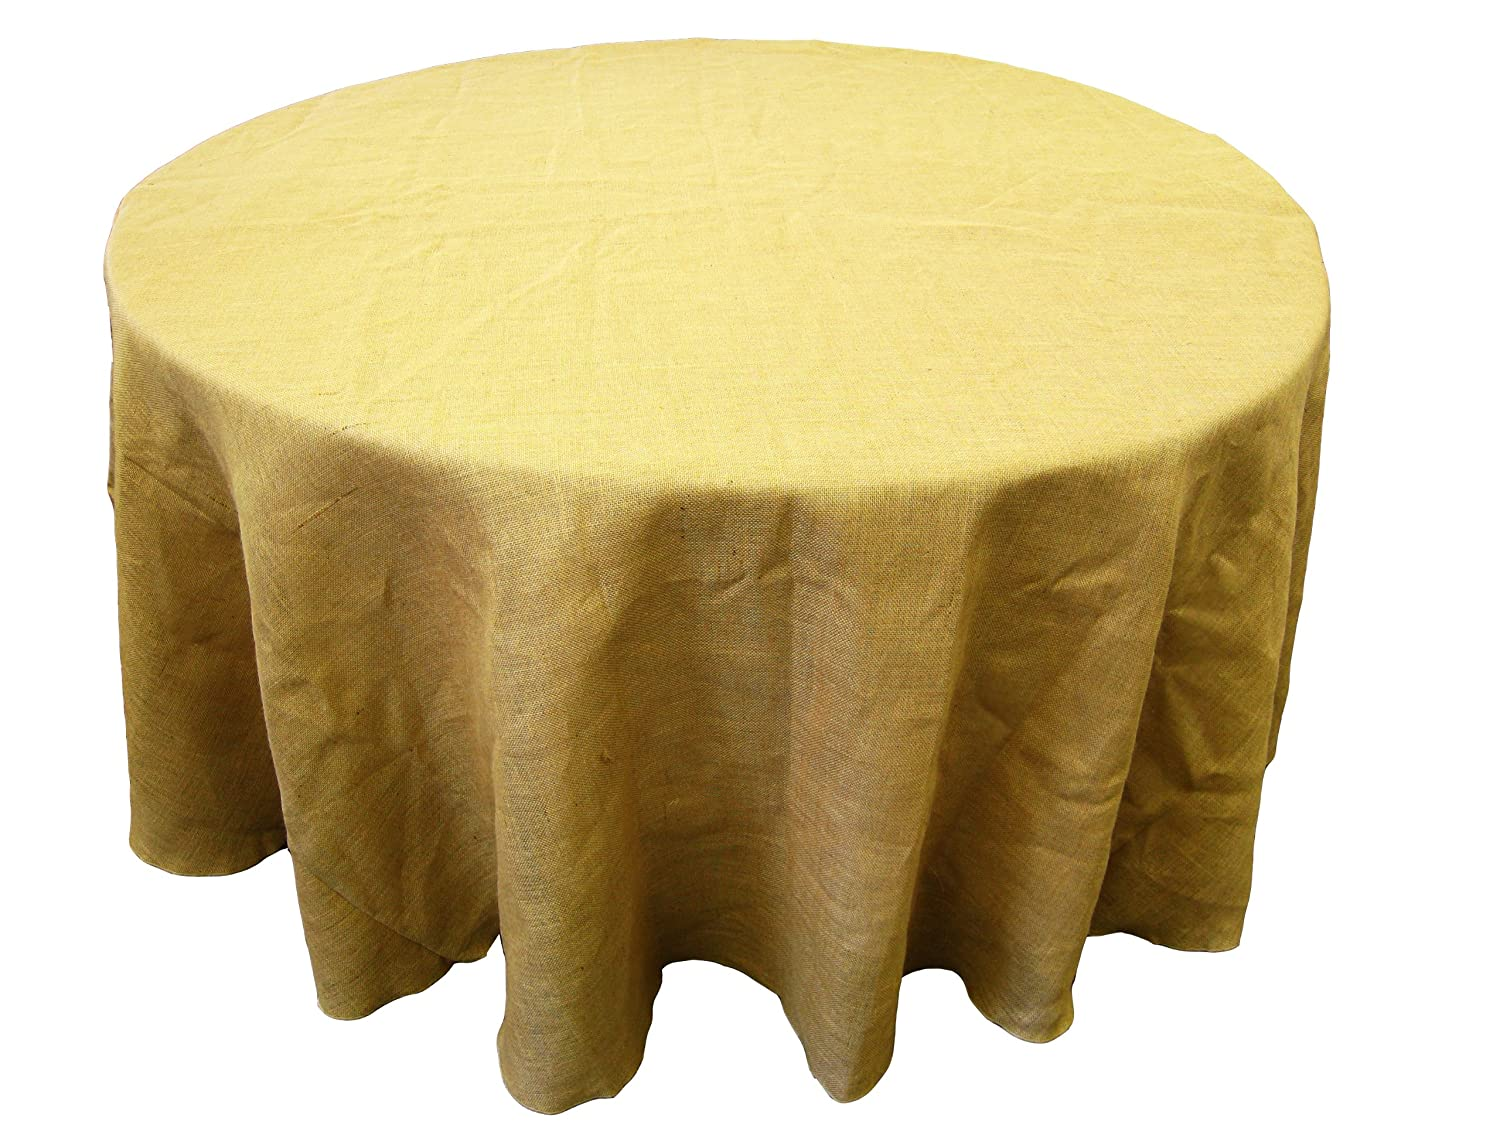 Amazon.com: 120 Inch Round Hessian Jute Burlap Tablecloth, Natural Color.:  Home U0026 Kitchen